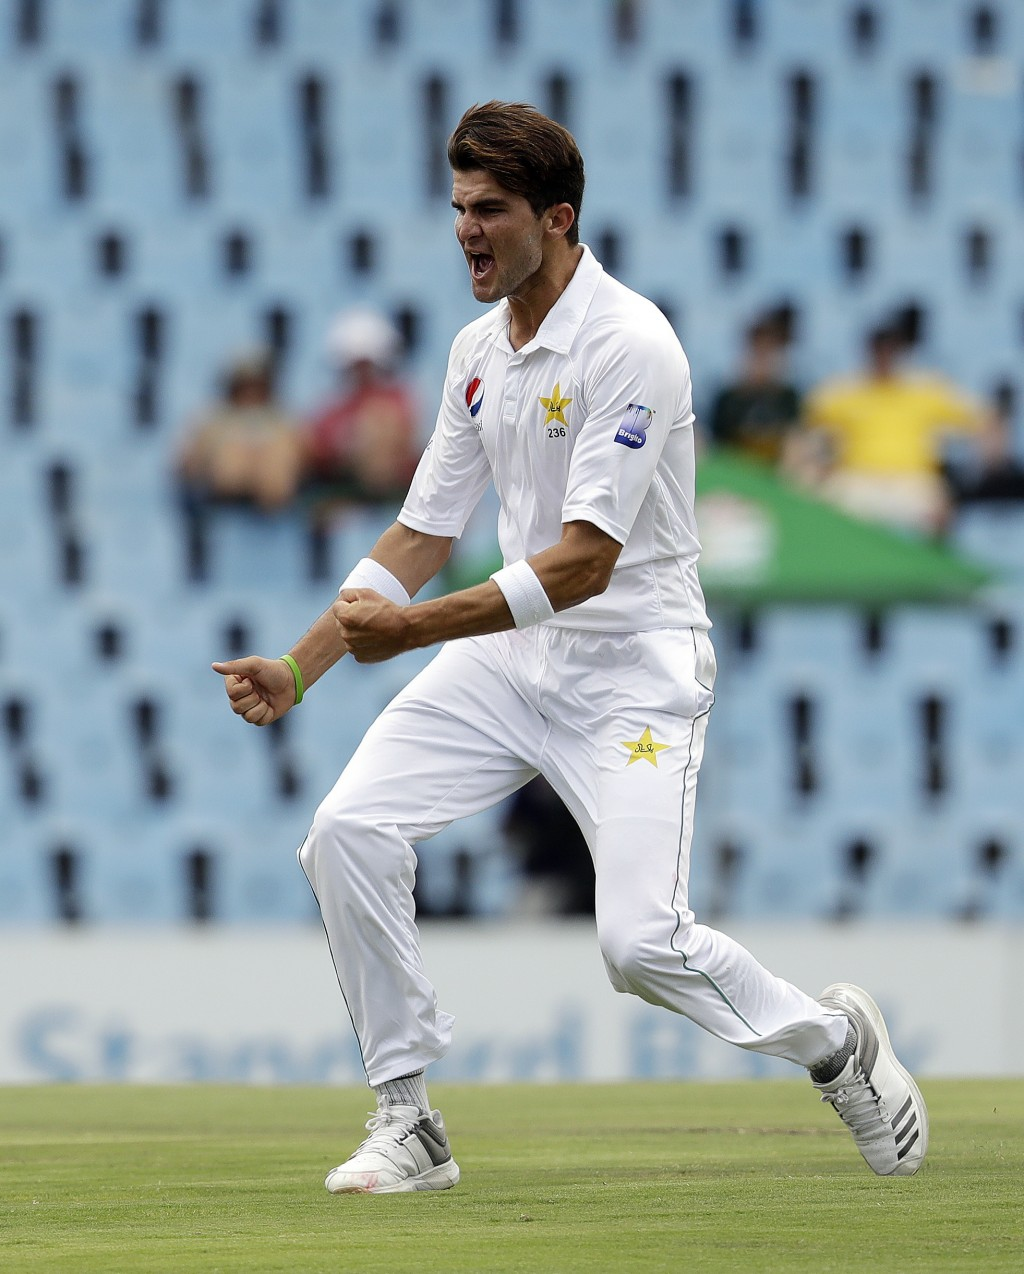 Pakistan's bowler Shaheen Afridi celebrates after dismissing South Africa's batsman Temba Bavuma for 53 runs on day two of the first cricket test matc...